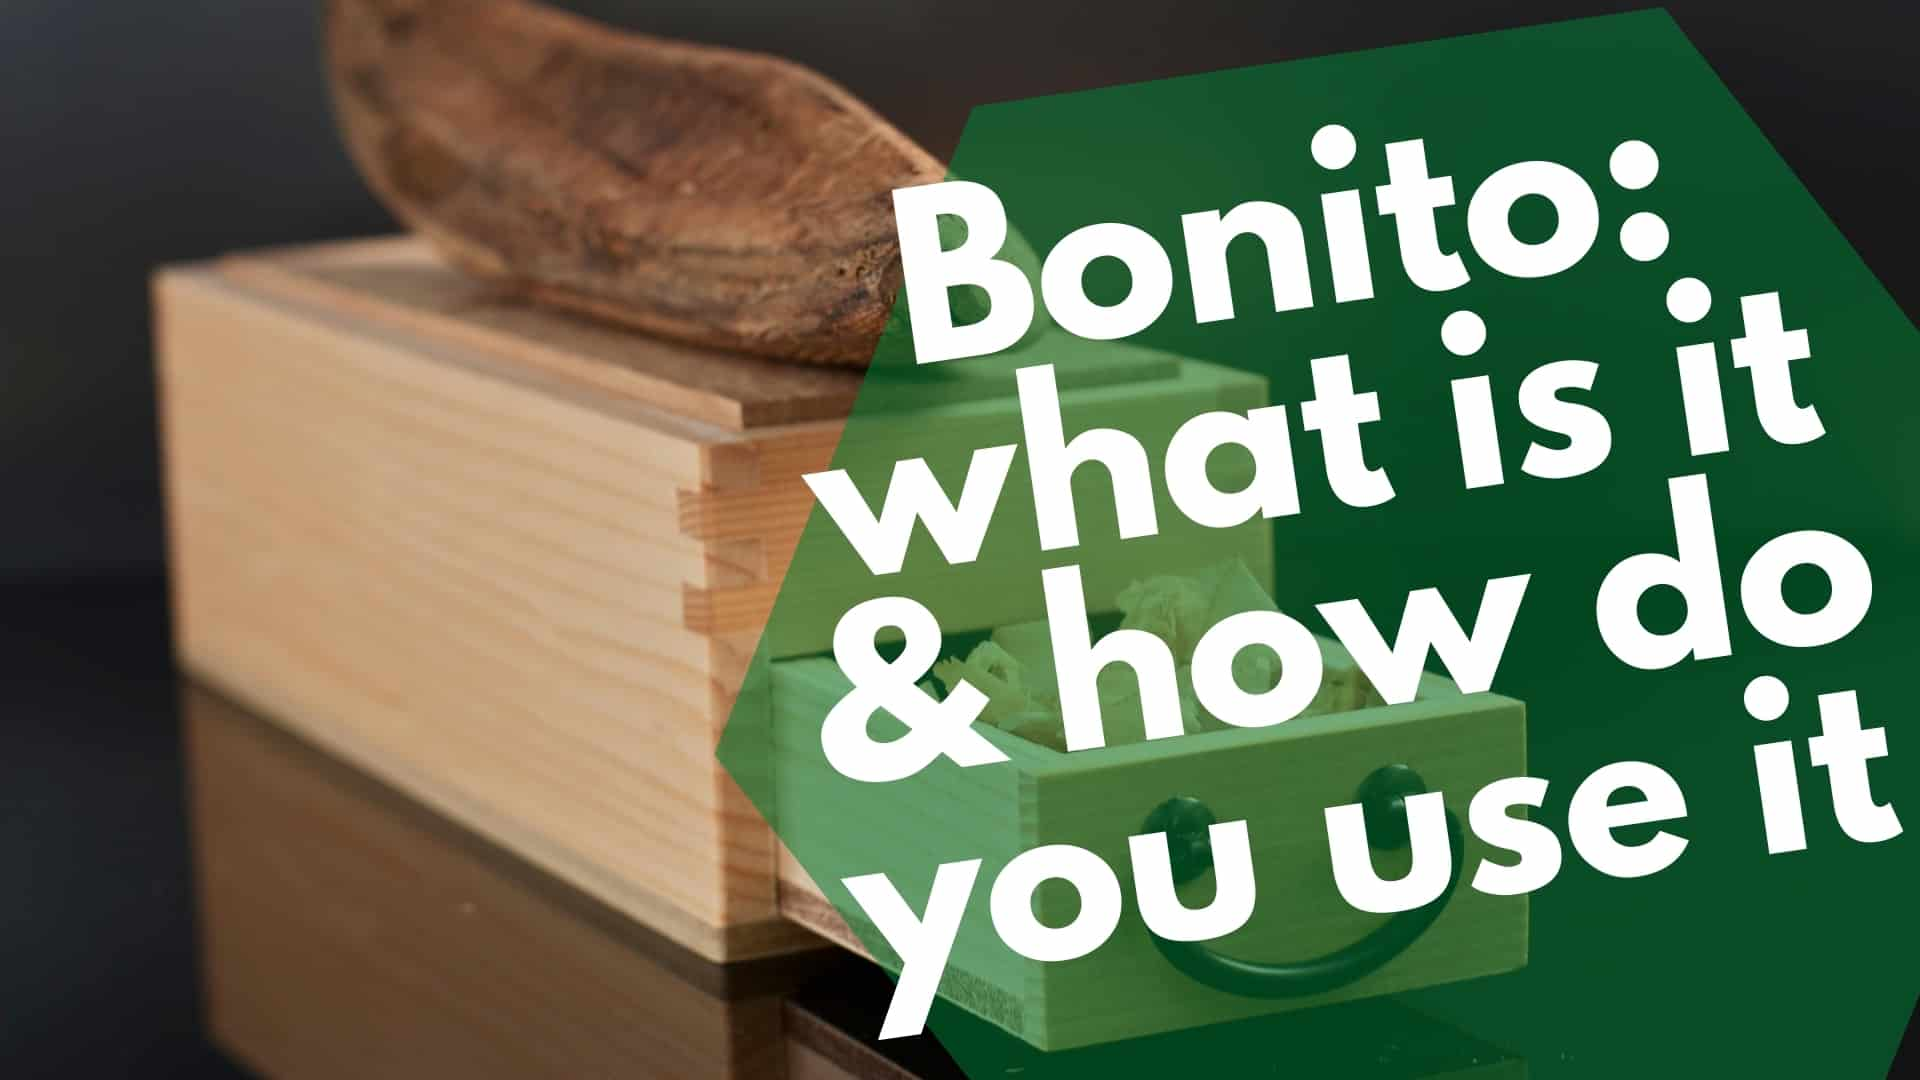 Bonito what is it and how do you use it